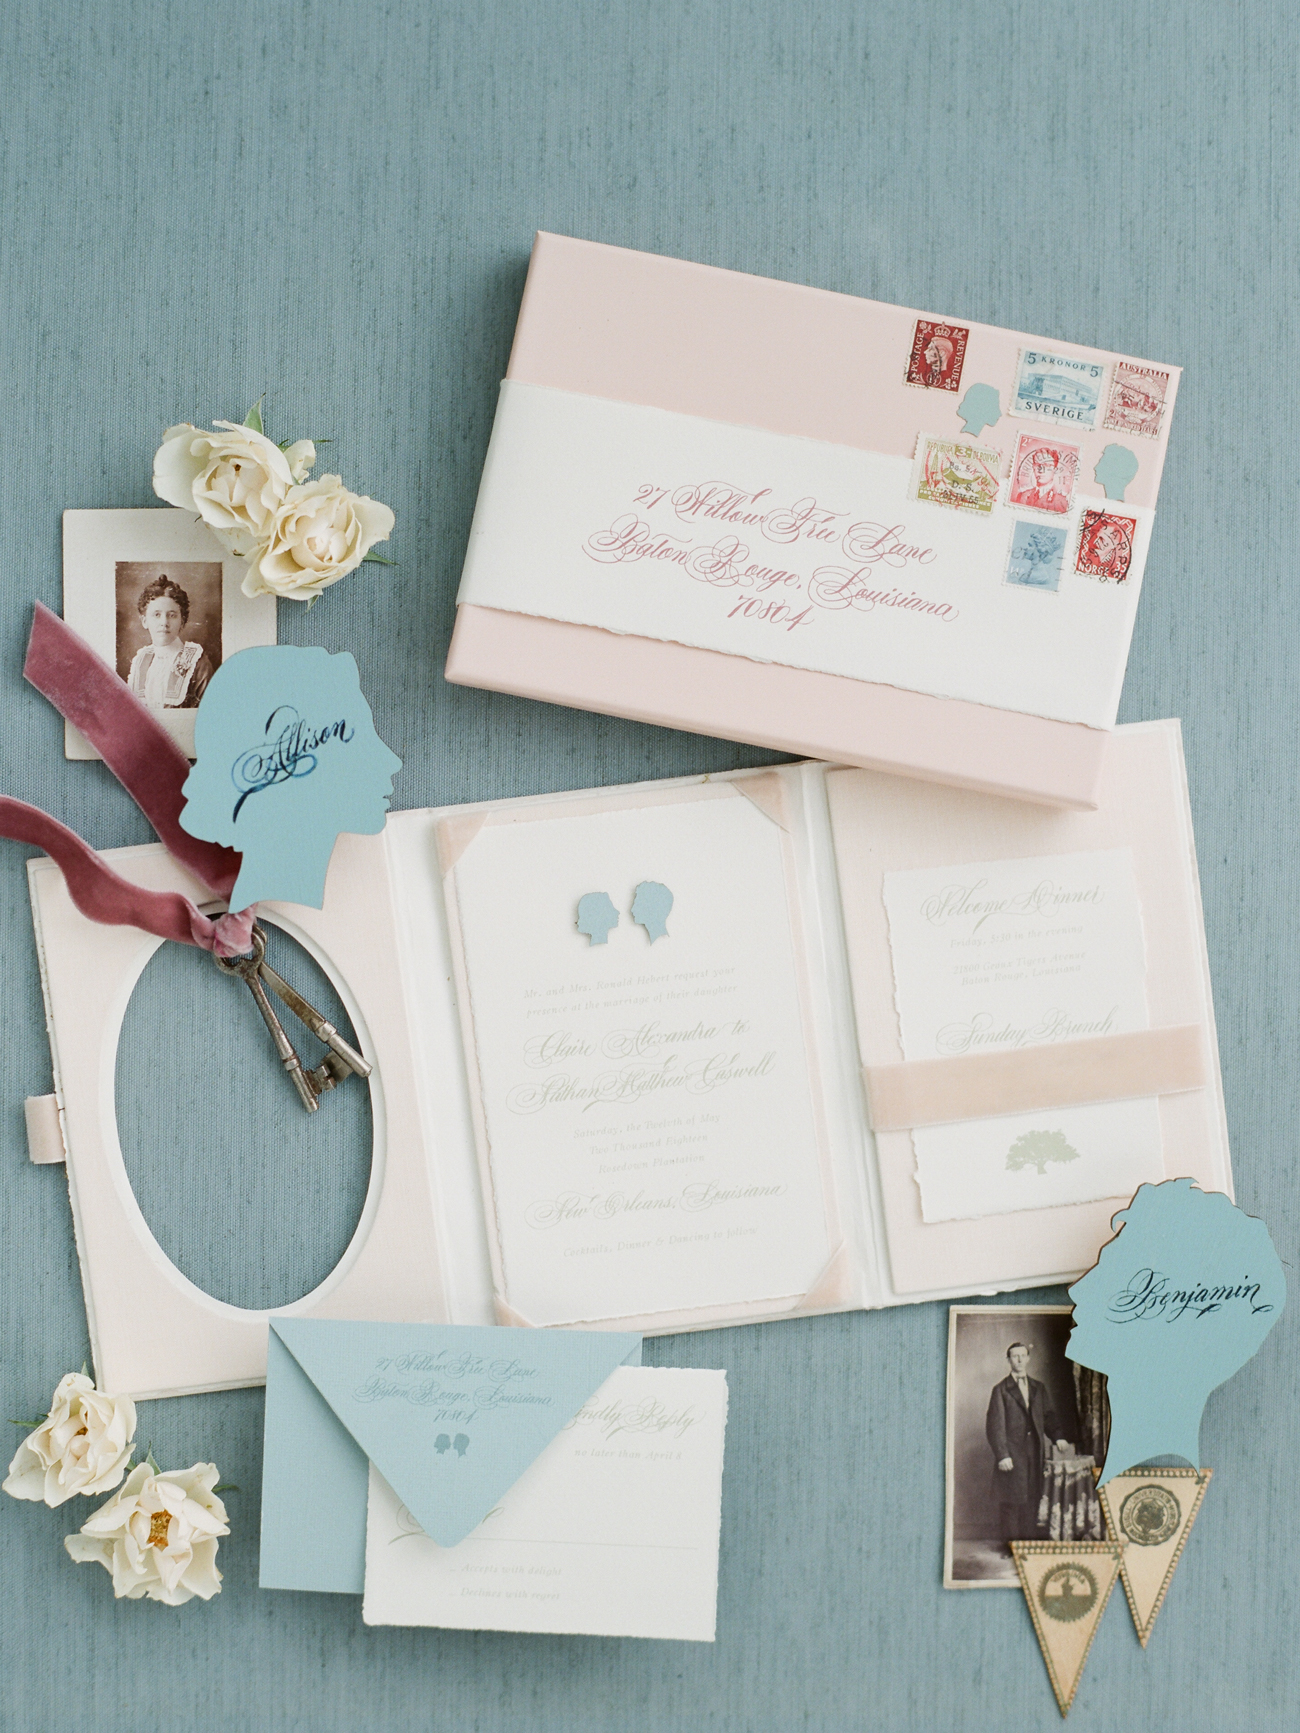 A Trend We're Loving: Booklet Wedding Invitations